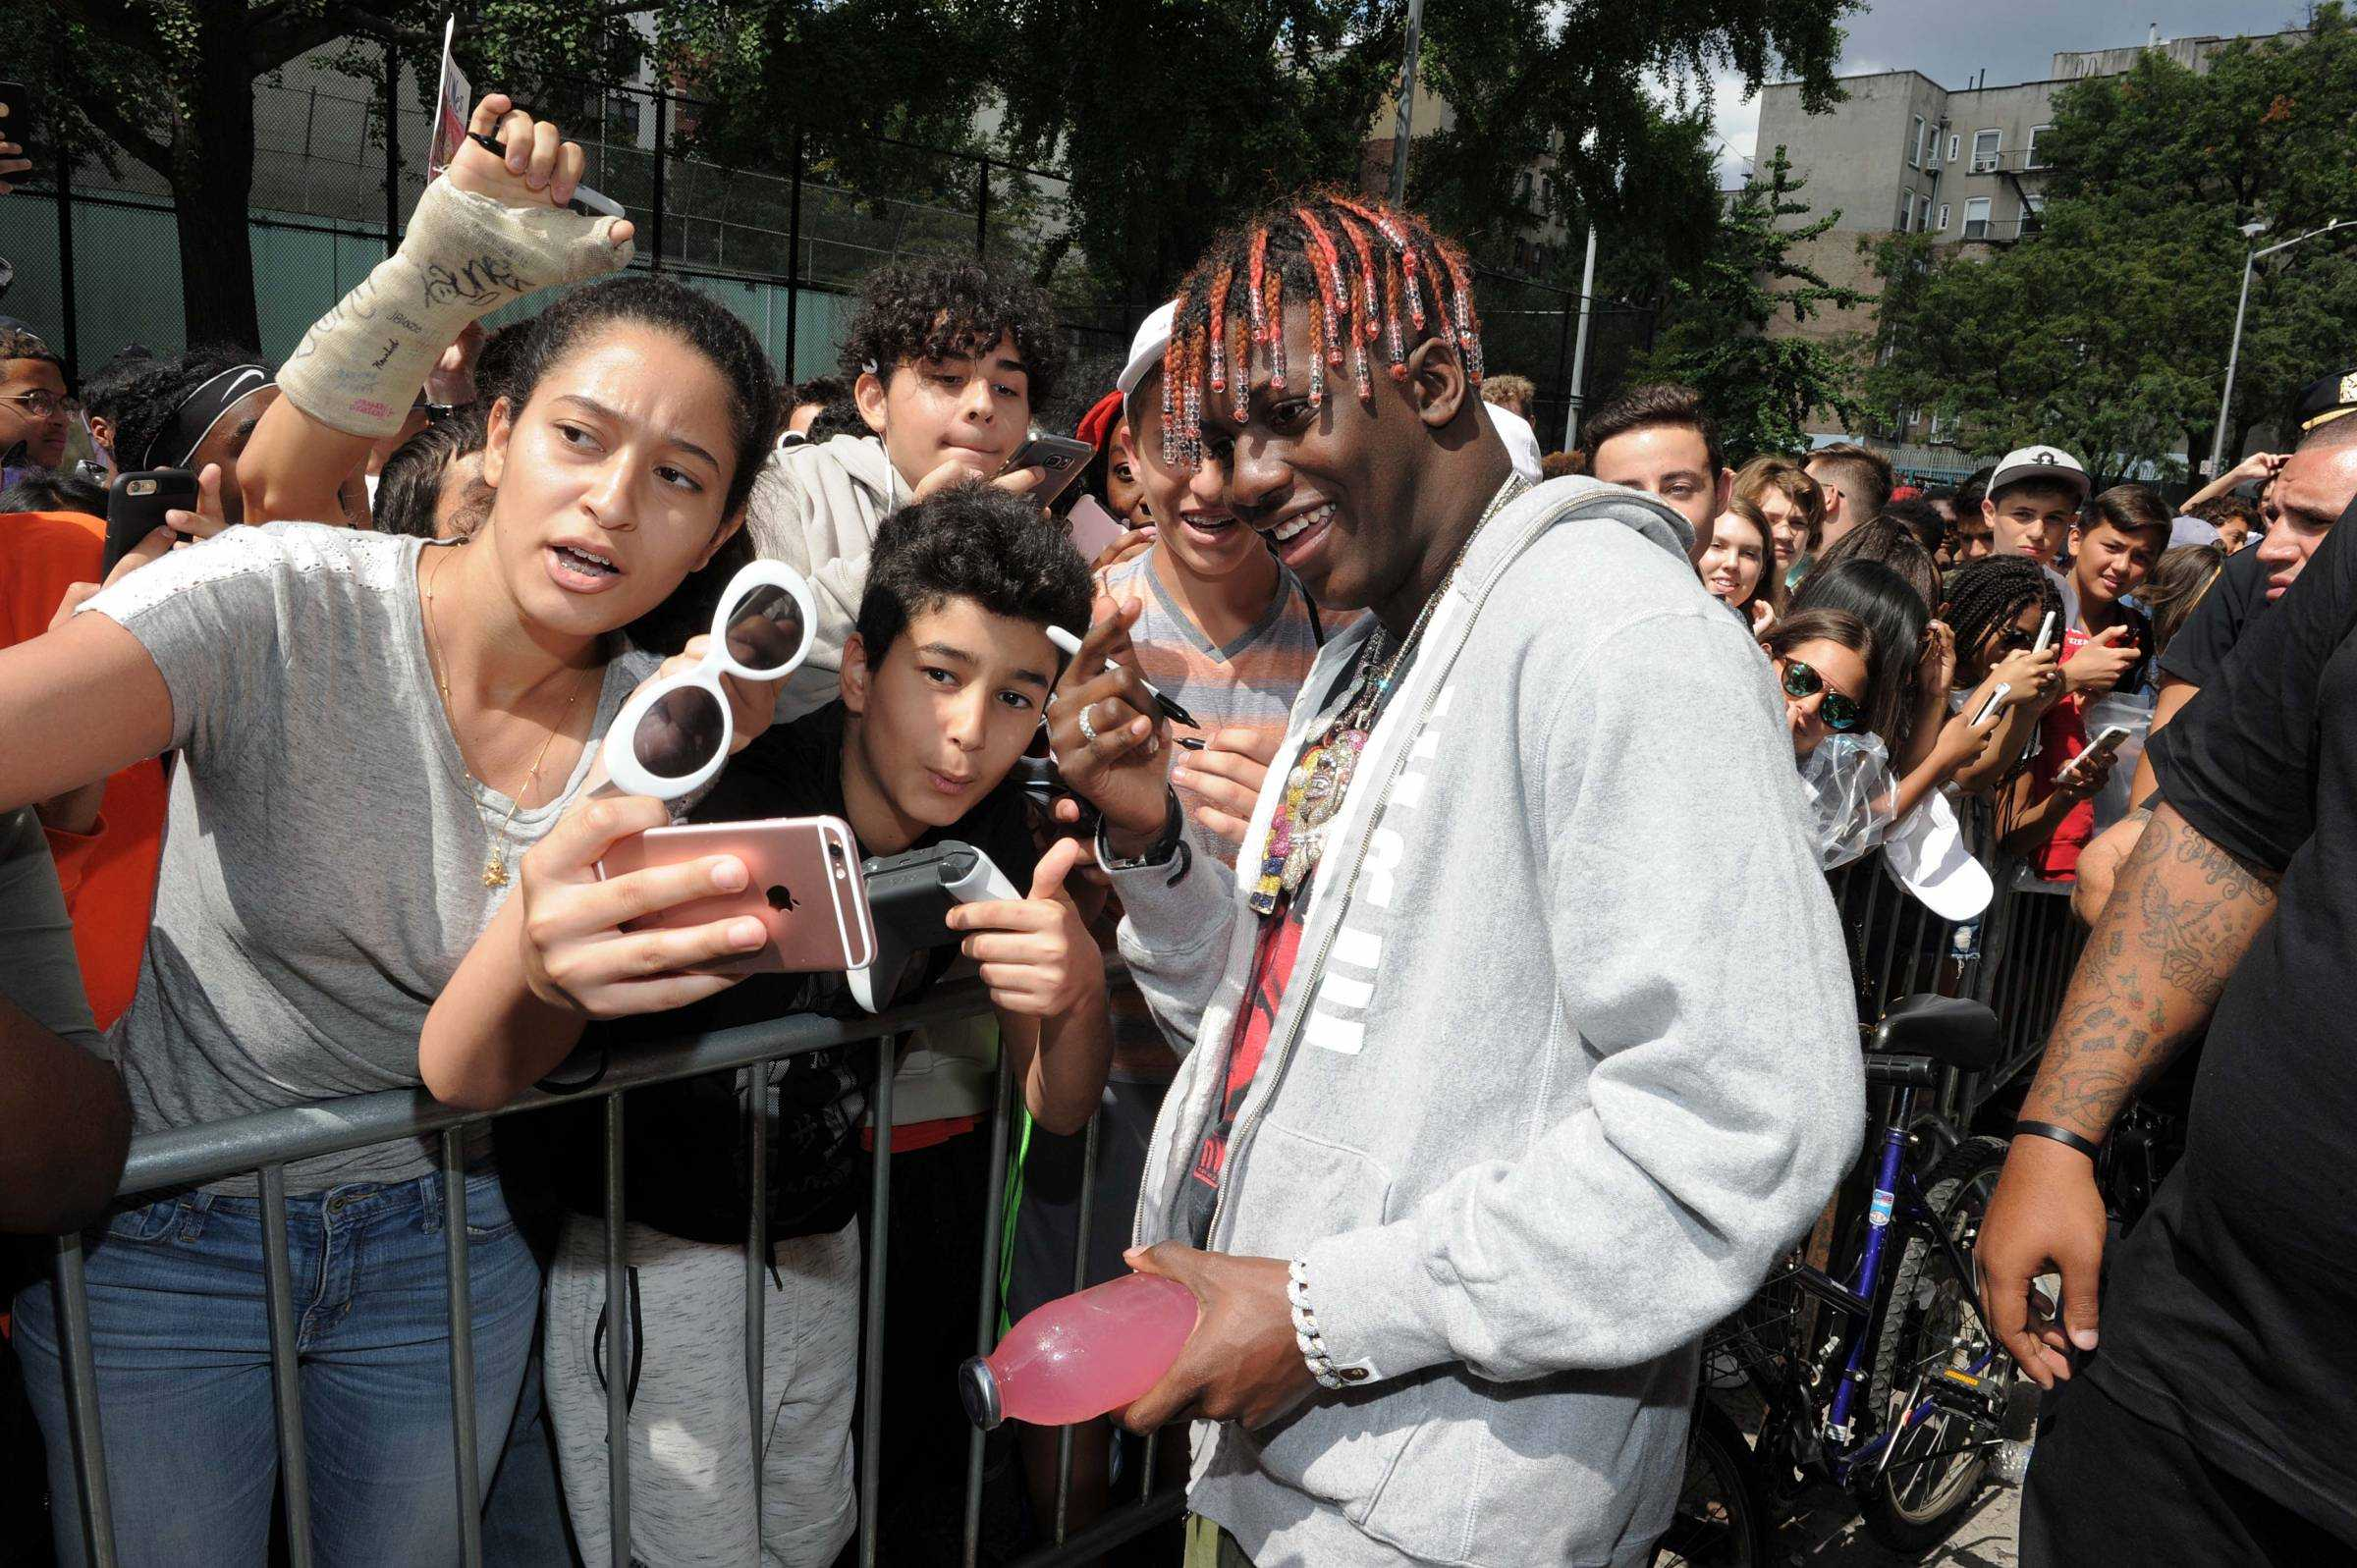 Lil' Yachty Surprises Fans at 'Yachty's Pizzeria' in NYC! [Photos]